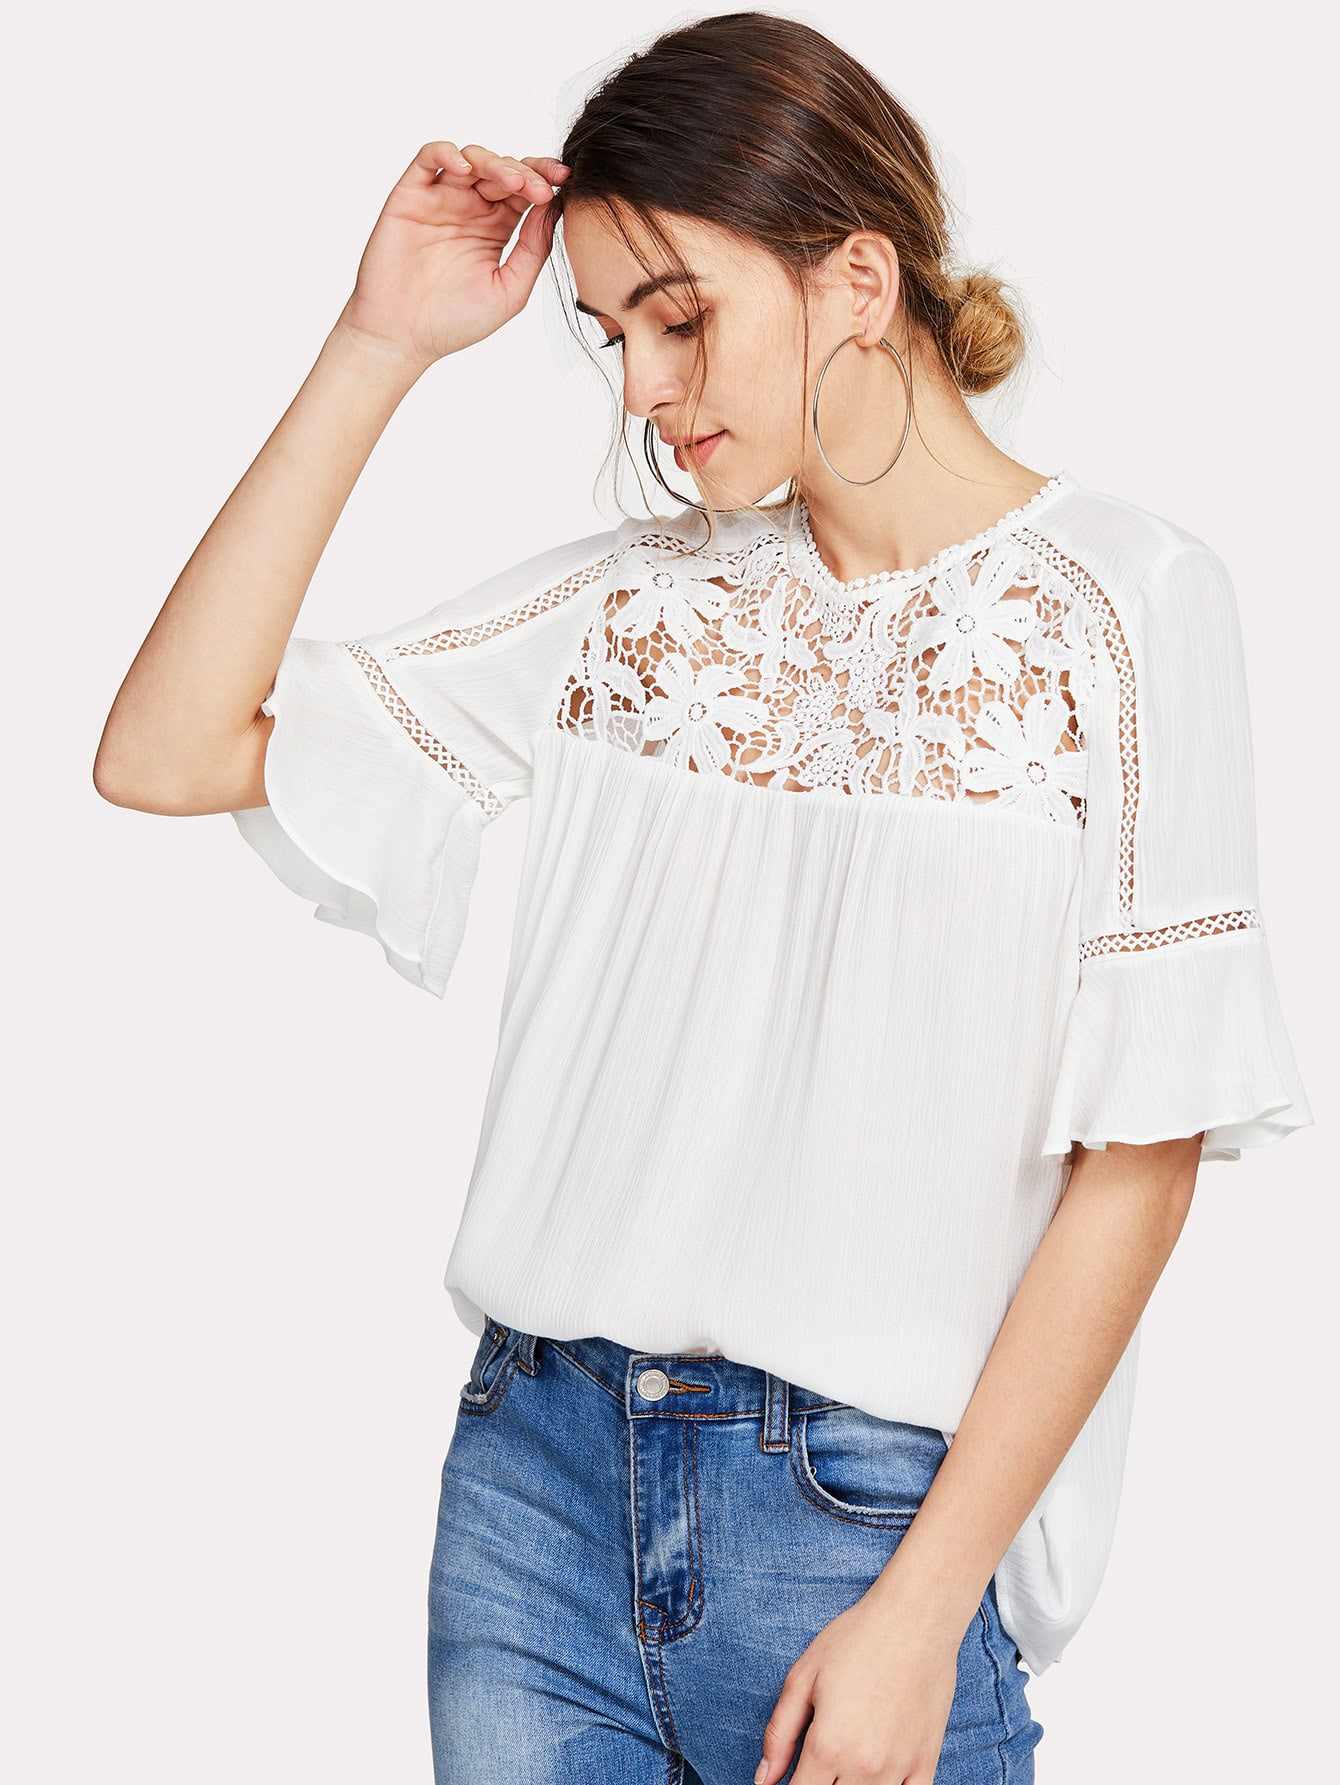 Hollow Floral Lace Yoke Keyhole Back Top knot front floral lace yoke top